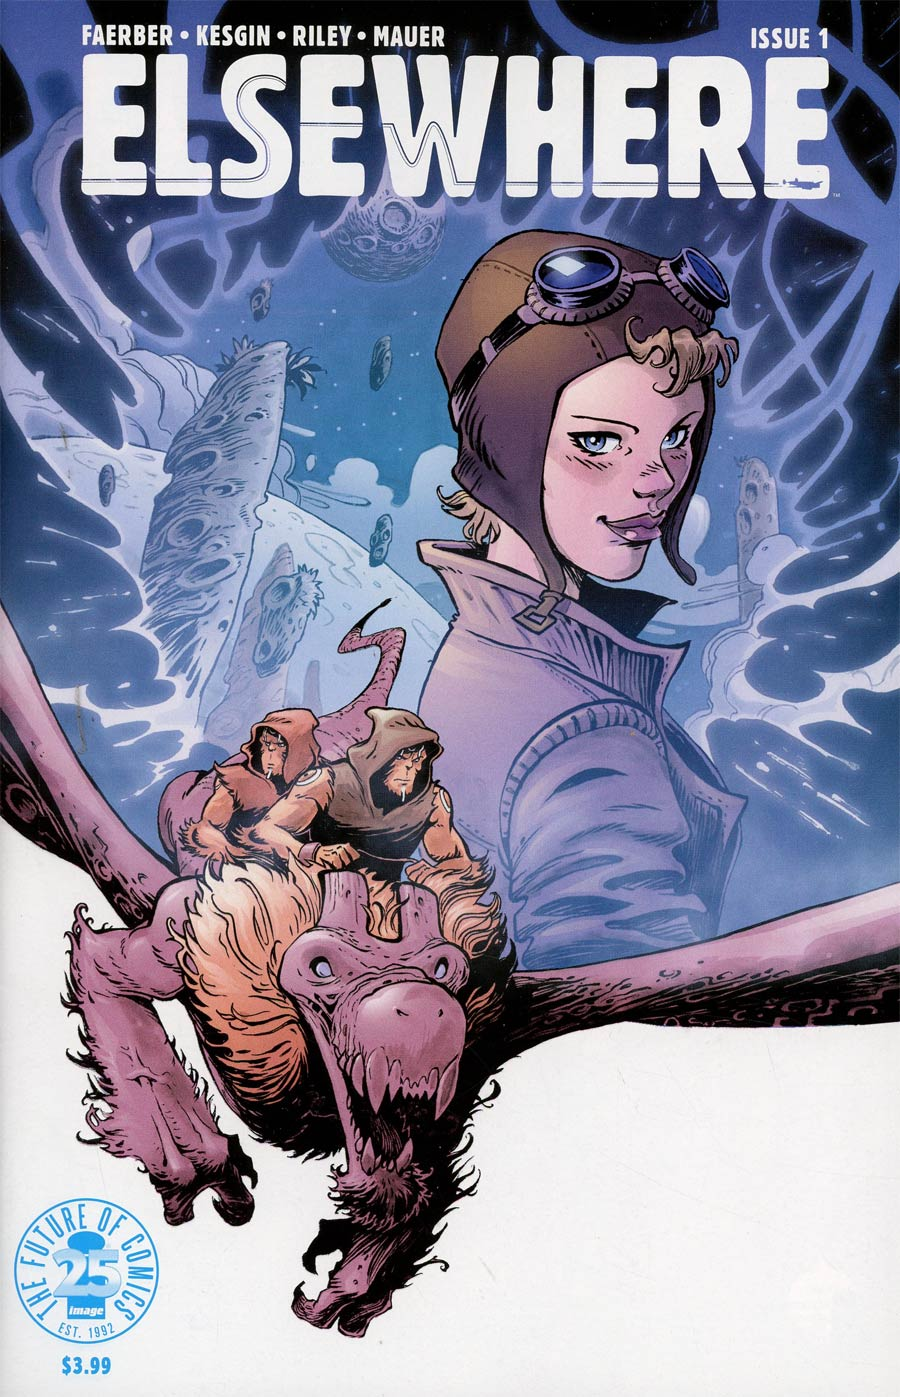 Cover to 'Elsewhere' #1. Art by Sumeyye Kesgin and Ron Riley/Image Comics